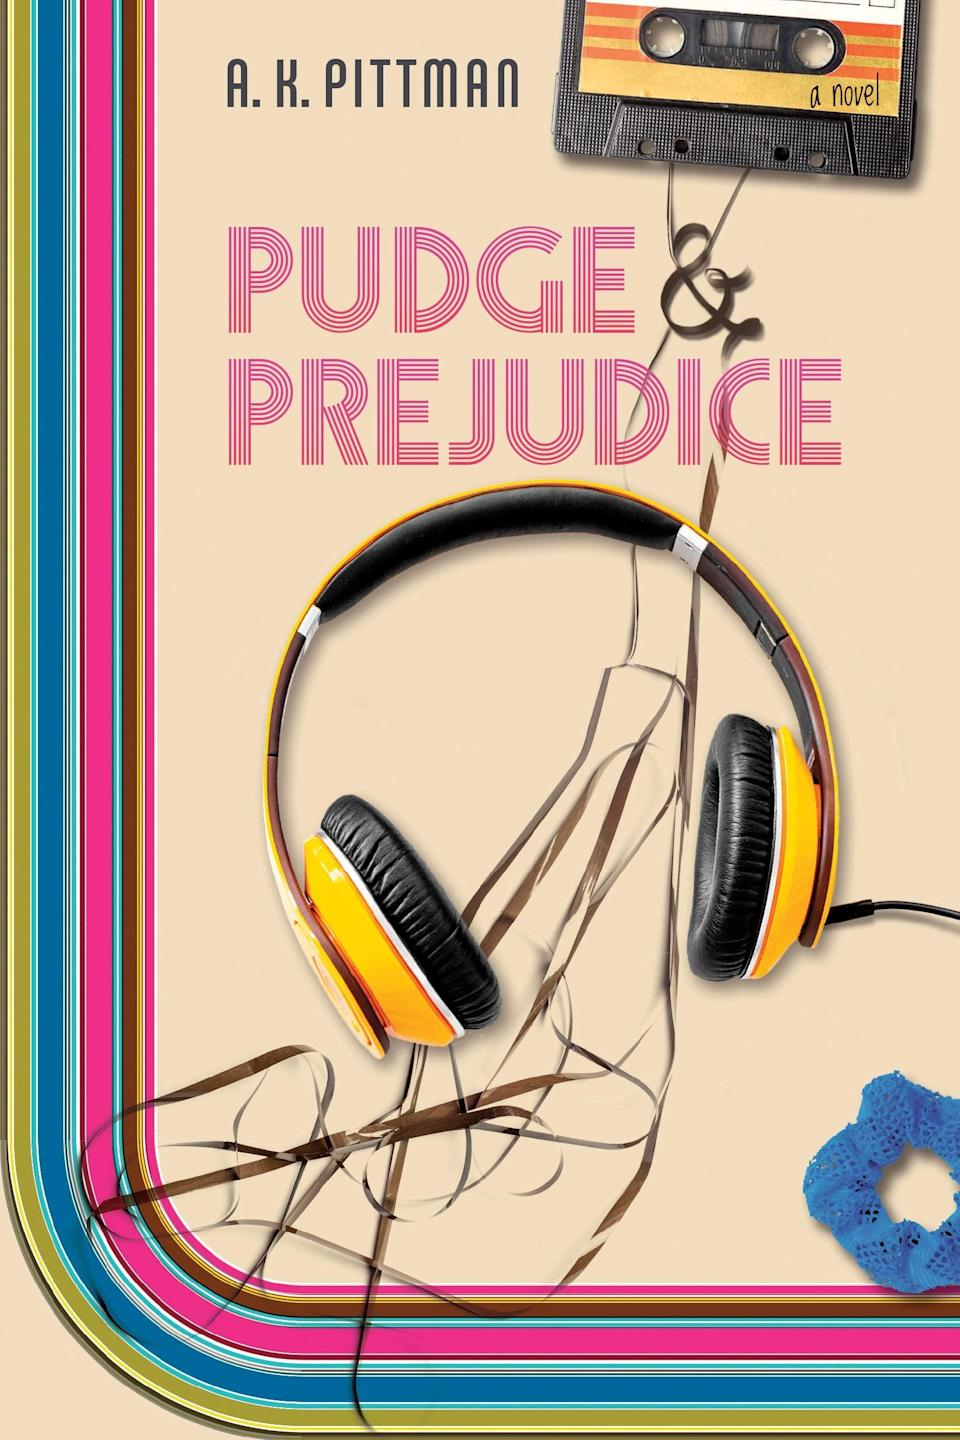 <p>Set in 1984 Texas, <span><strong>Pudge and Prejudice</strong></span> by A.K. Pittman is a body positive YA retelling of Jane Austen's <strong>Pride and Prejudice</strong>. When Elyse Nebbit struggles to accept her body and fit in at her new school, she finds help in the form of her no-nonsense best friend and the handsome boy she can't help but fall for. </p> <p><em>Out Jan. 12</em></p>